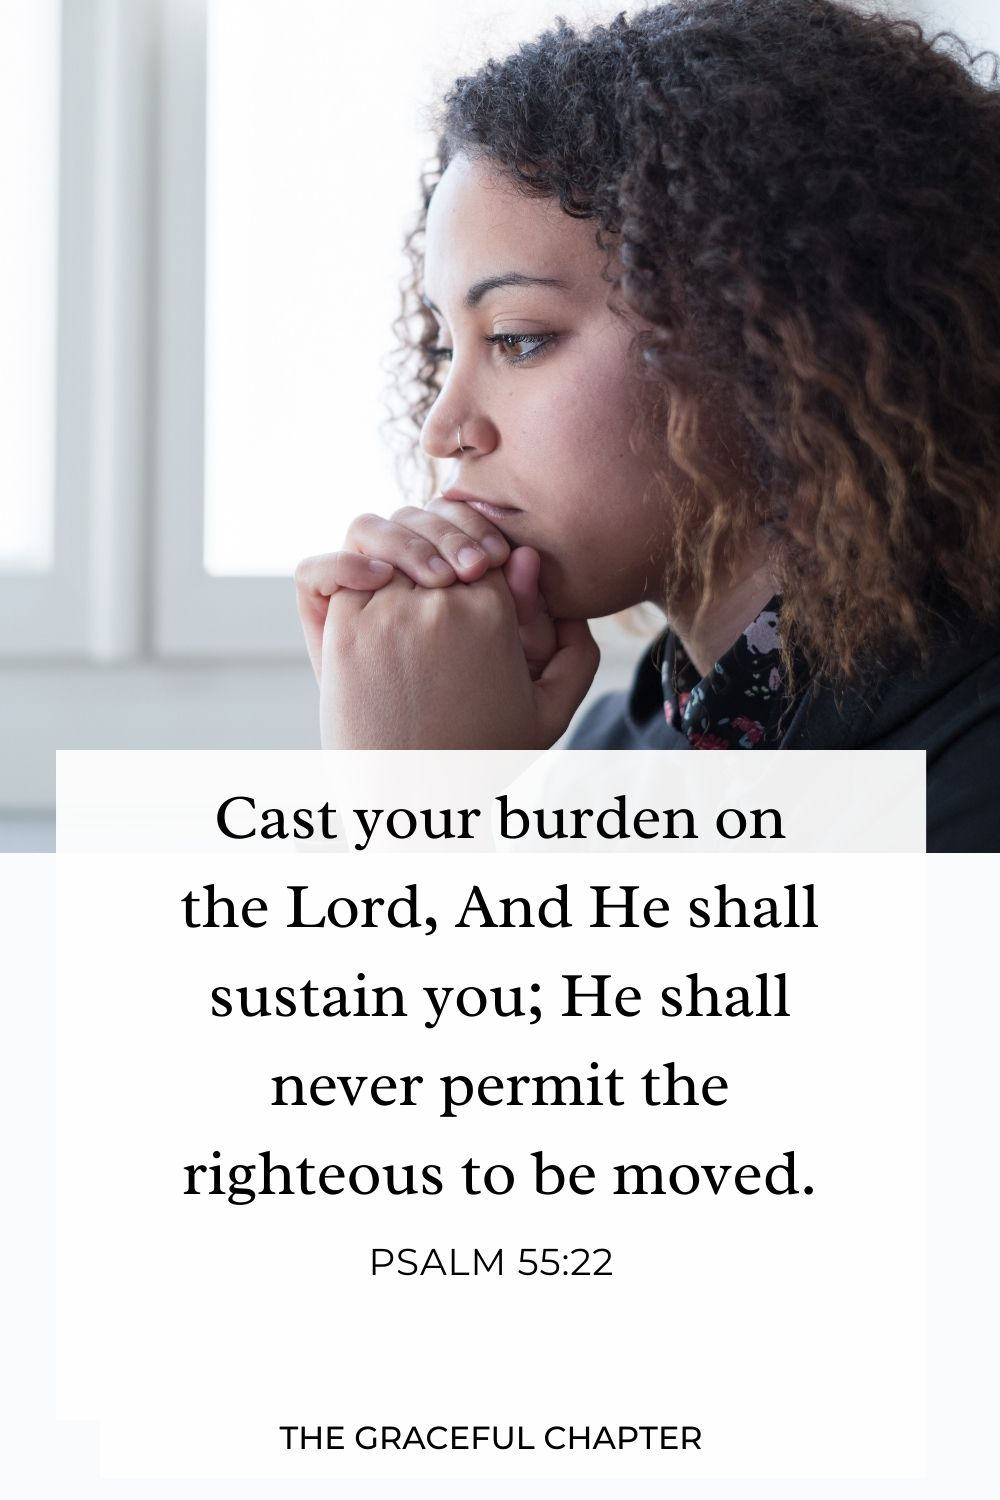 Cast your burden on the Lord, And He shall sustain you; He shall never permit the righteous to be moved. Psalm 55:22